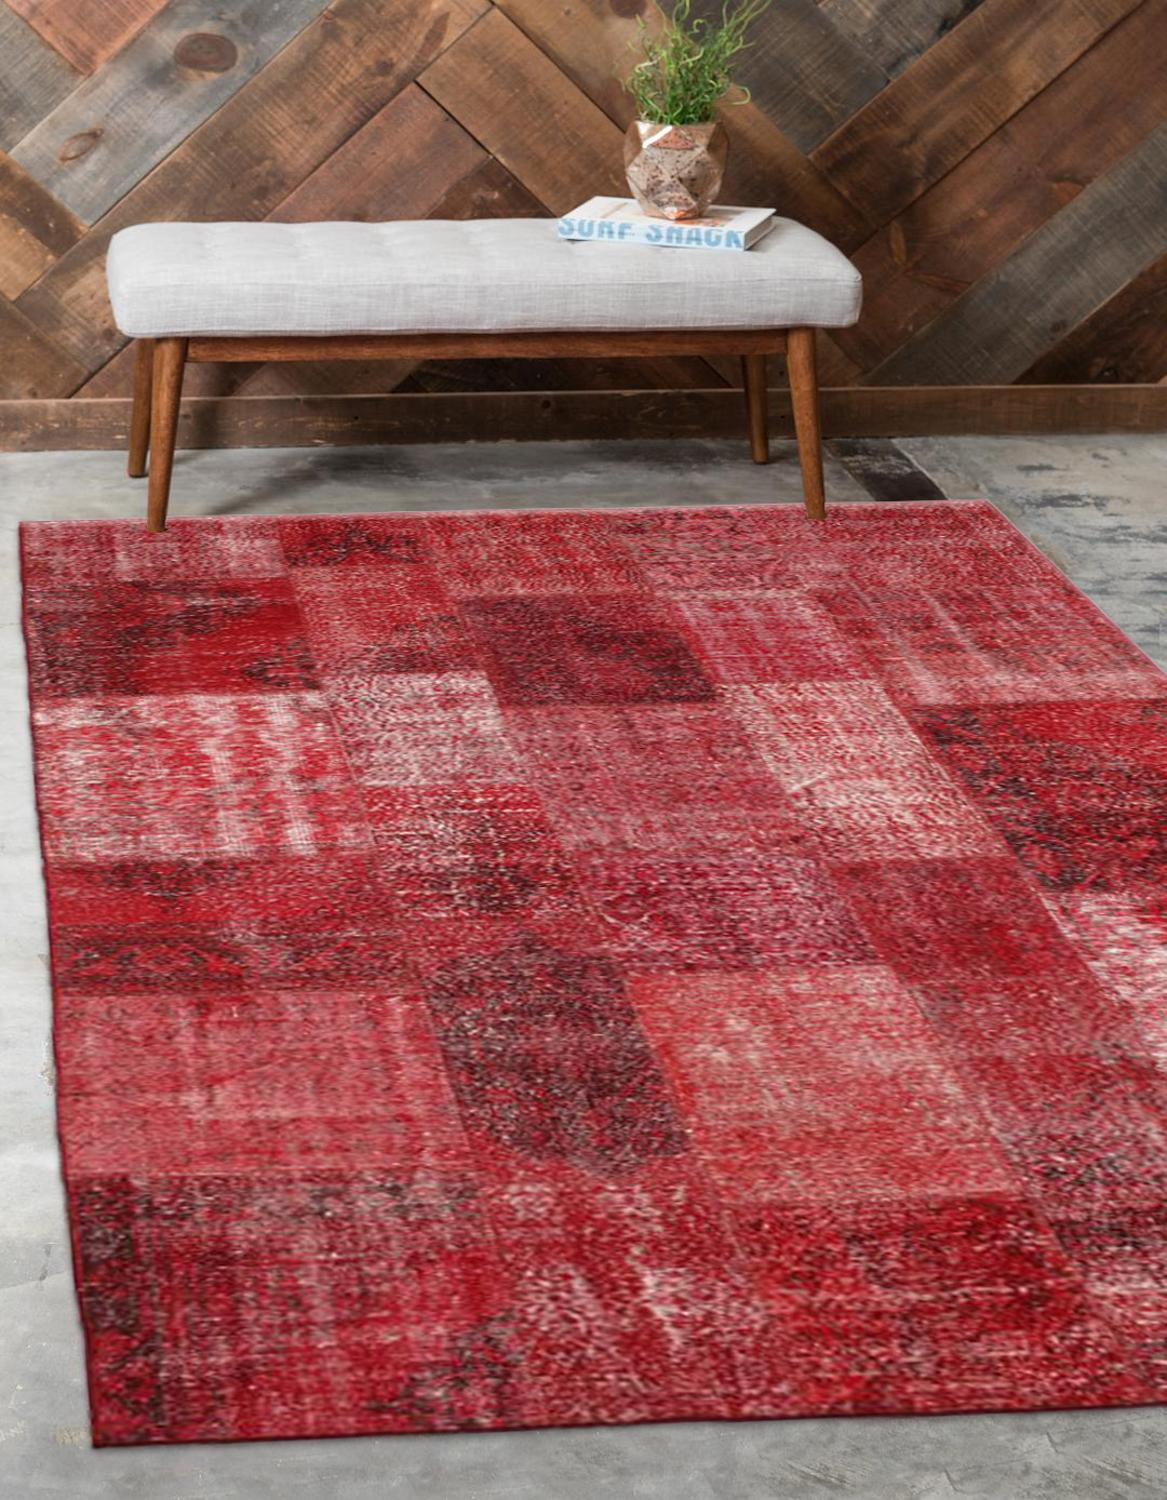 Else Red Anatolian Patchwork Rug Turkish Handmade Organic Area Rug Decorative Home Decor Wool Patchwork Rug Carpet